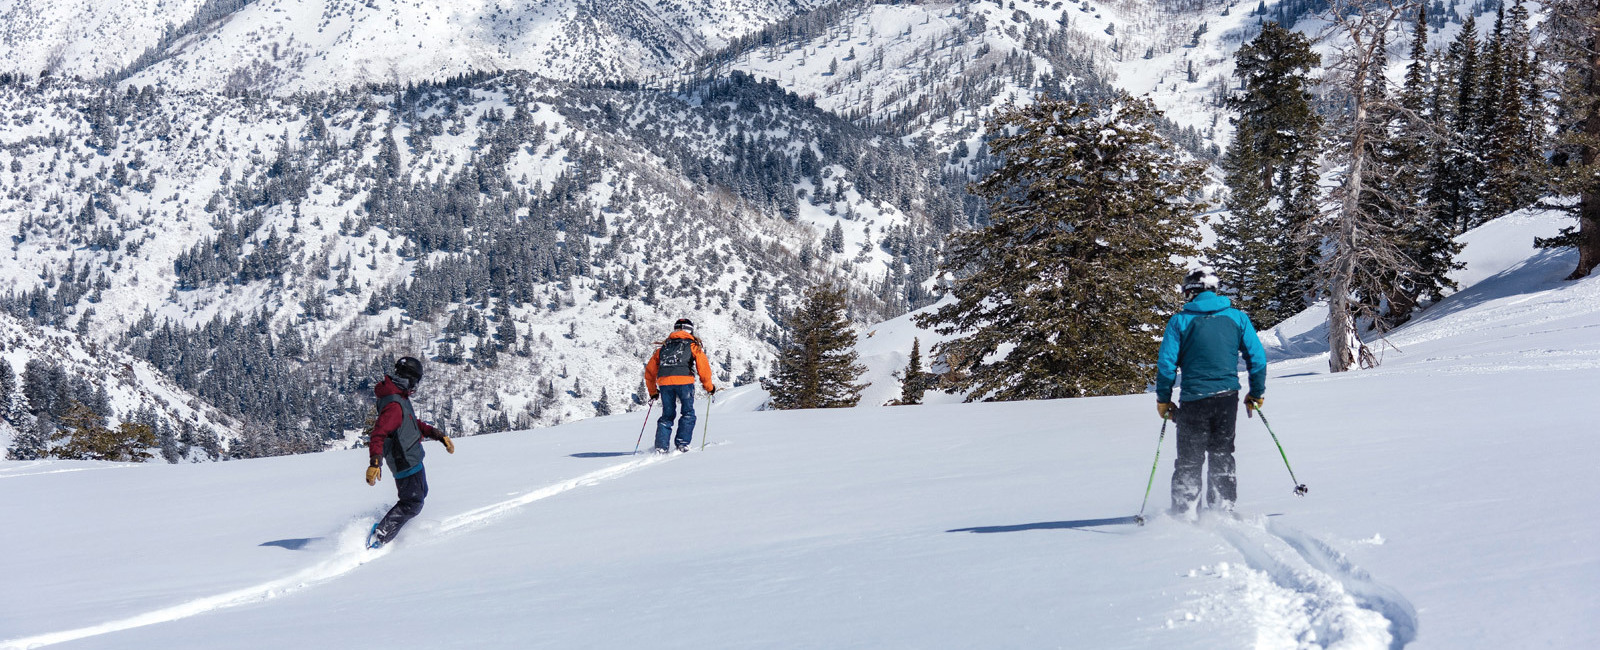 Powder Mountain - Skin & Ski Experience